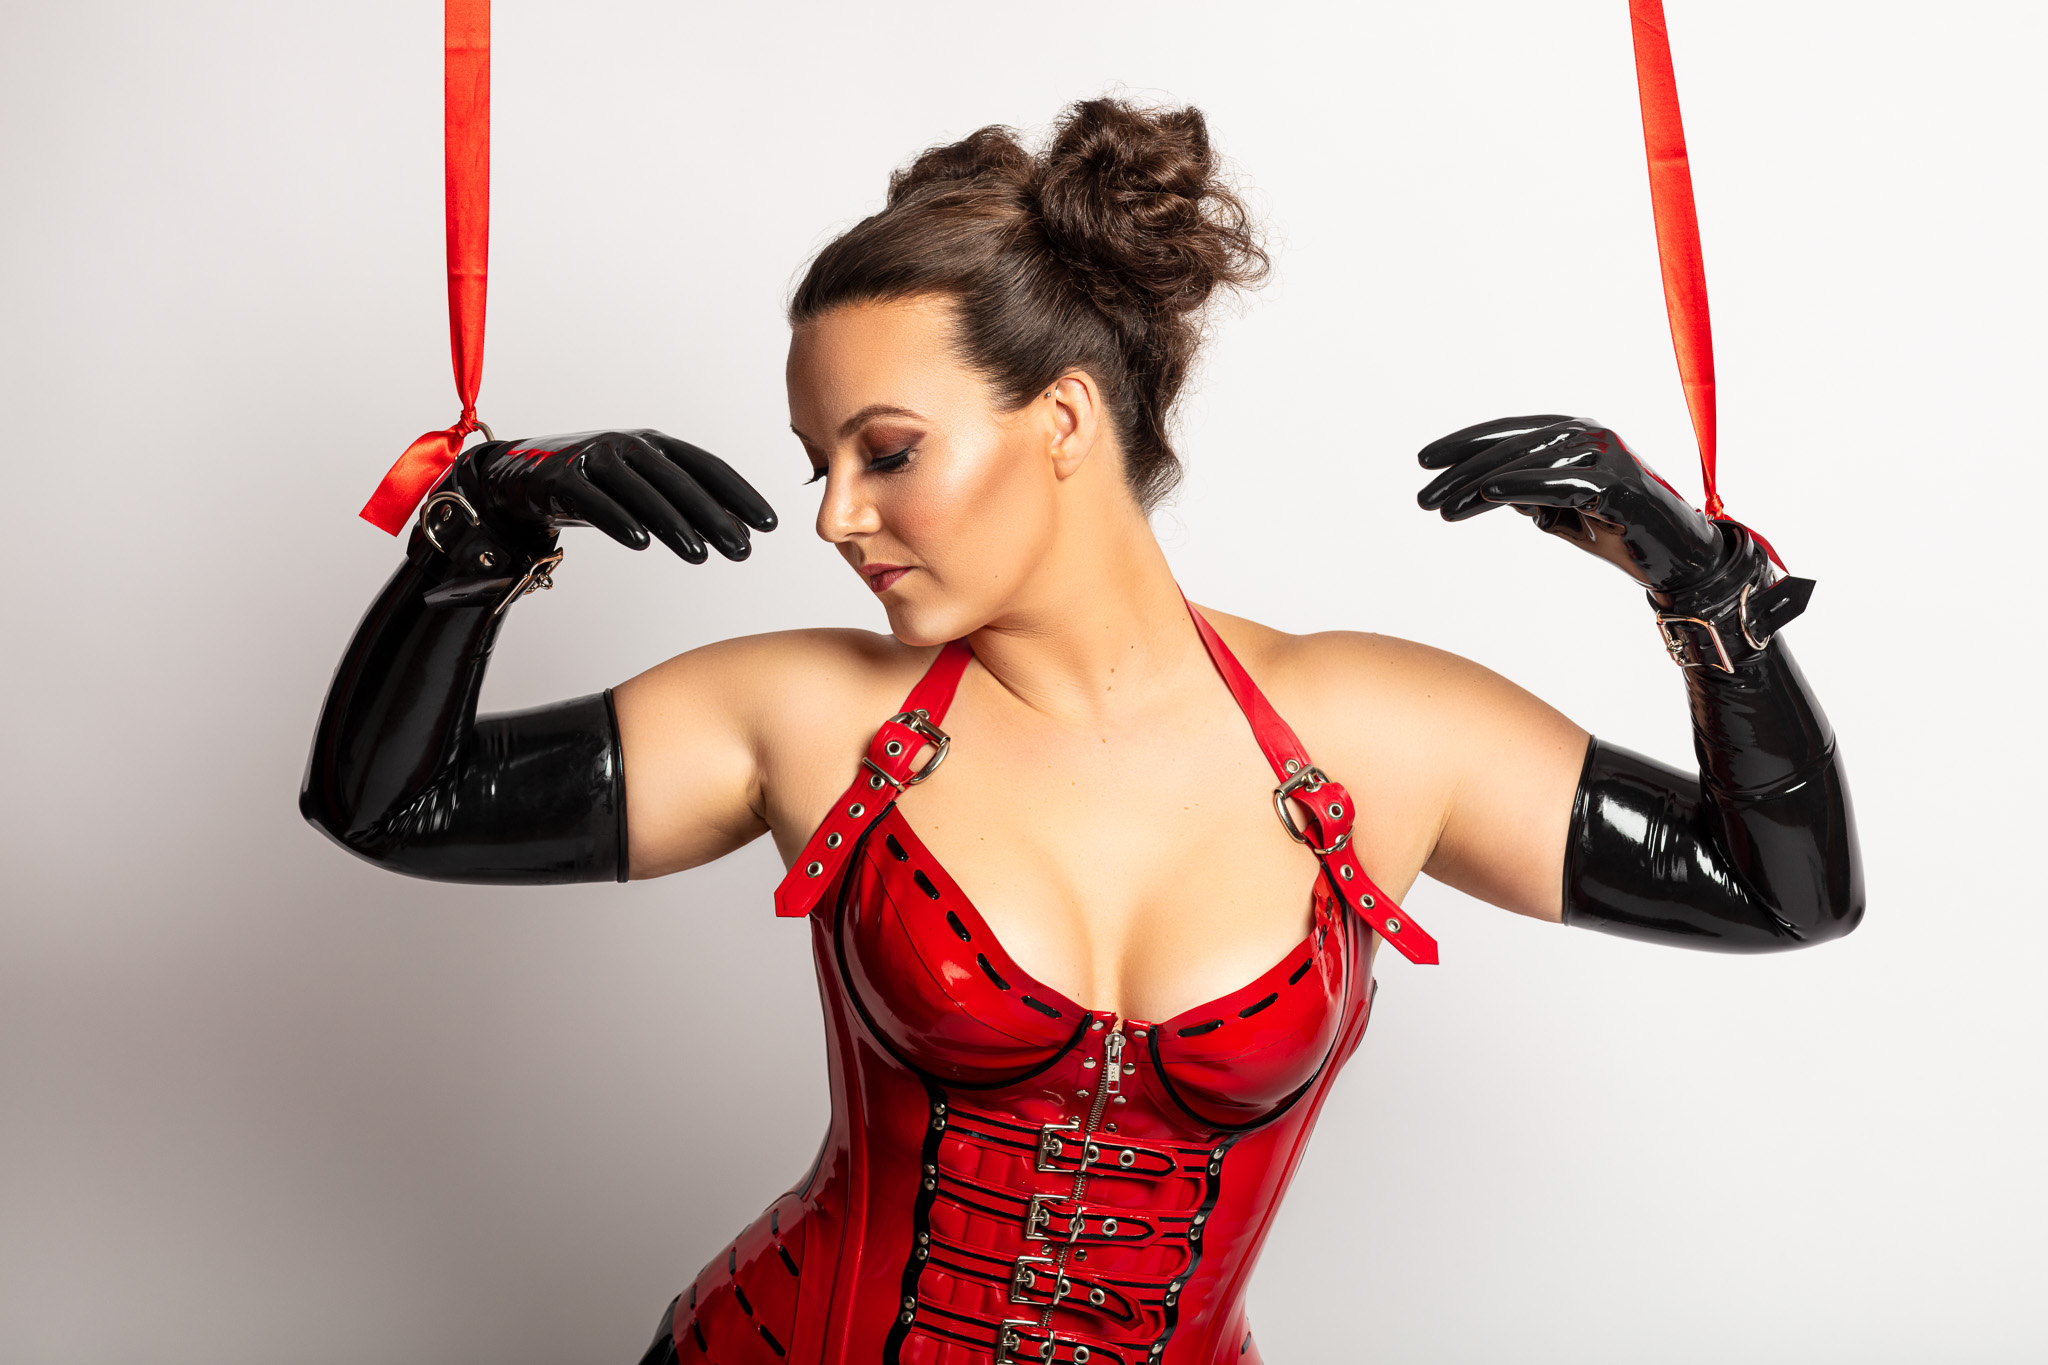 Model Eva Act Like a Doll in her Latex Outfit